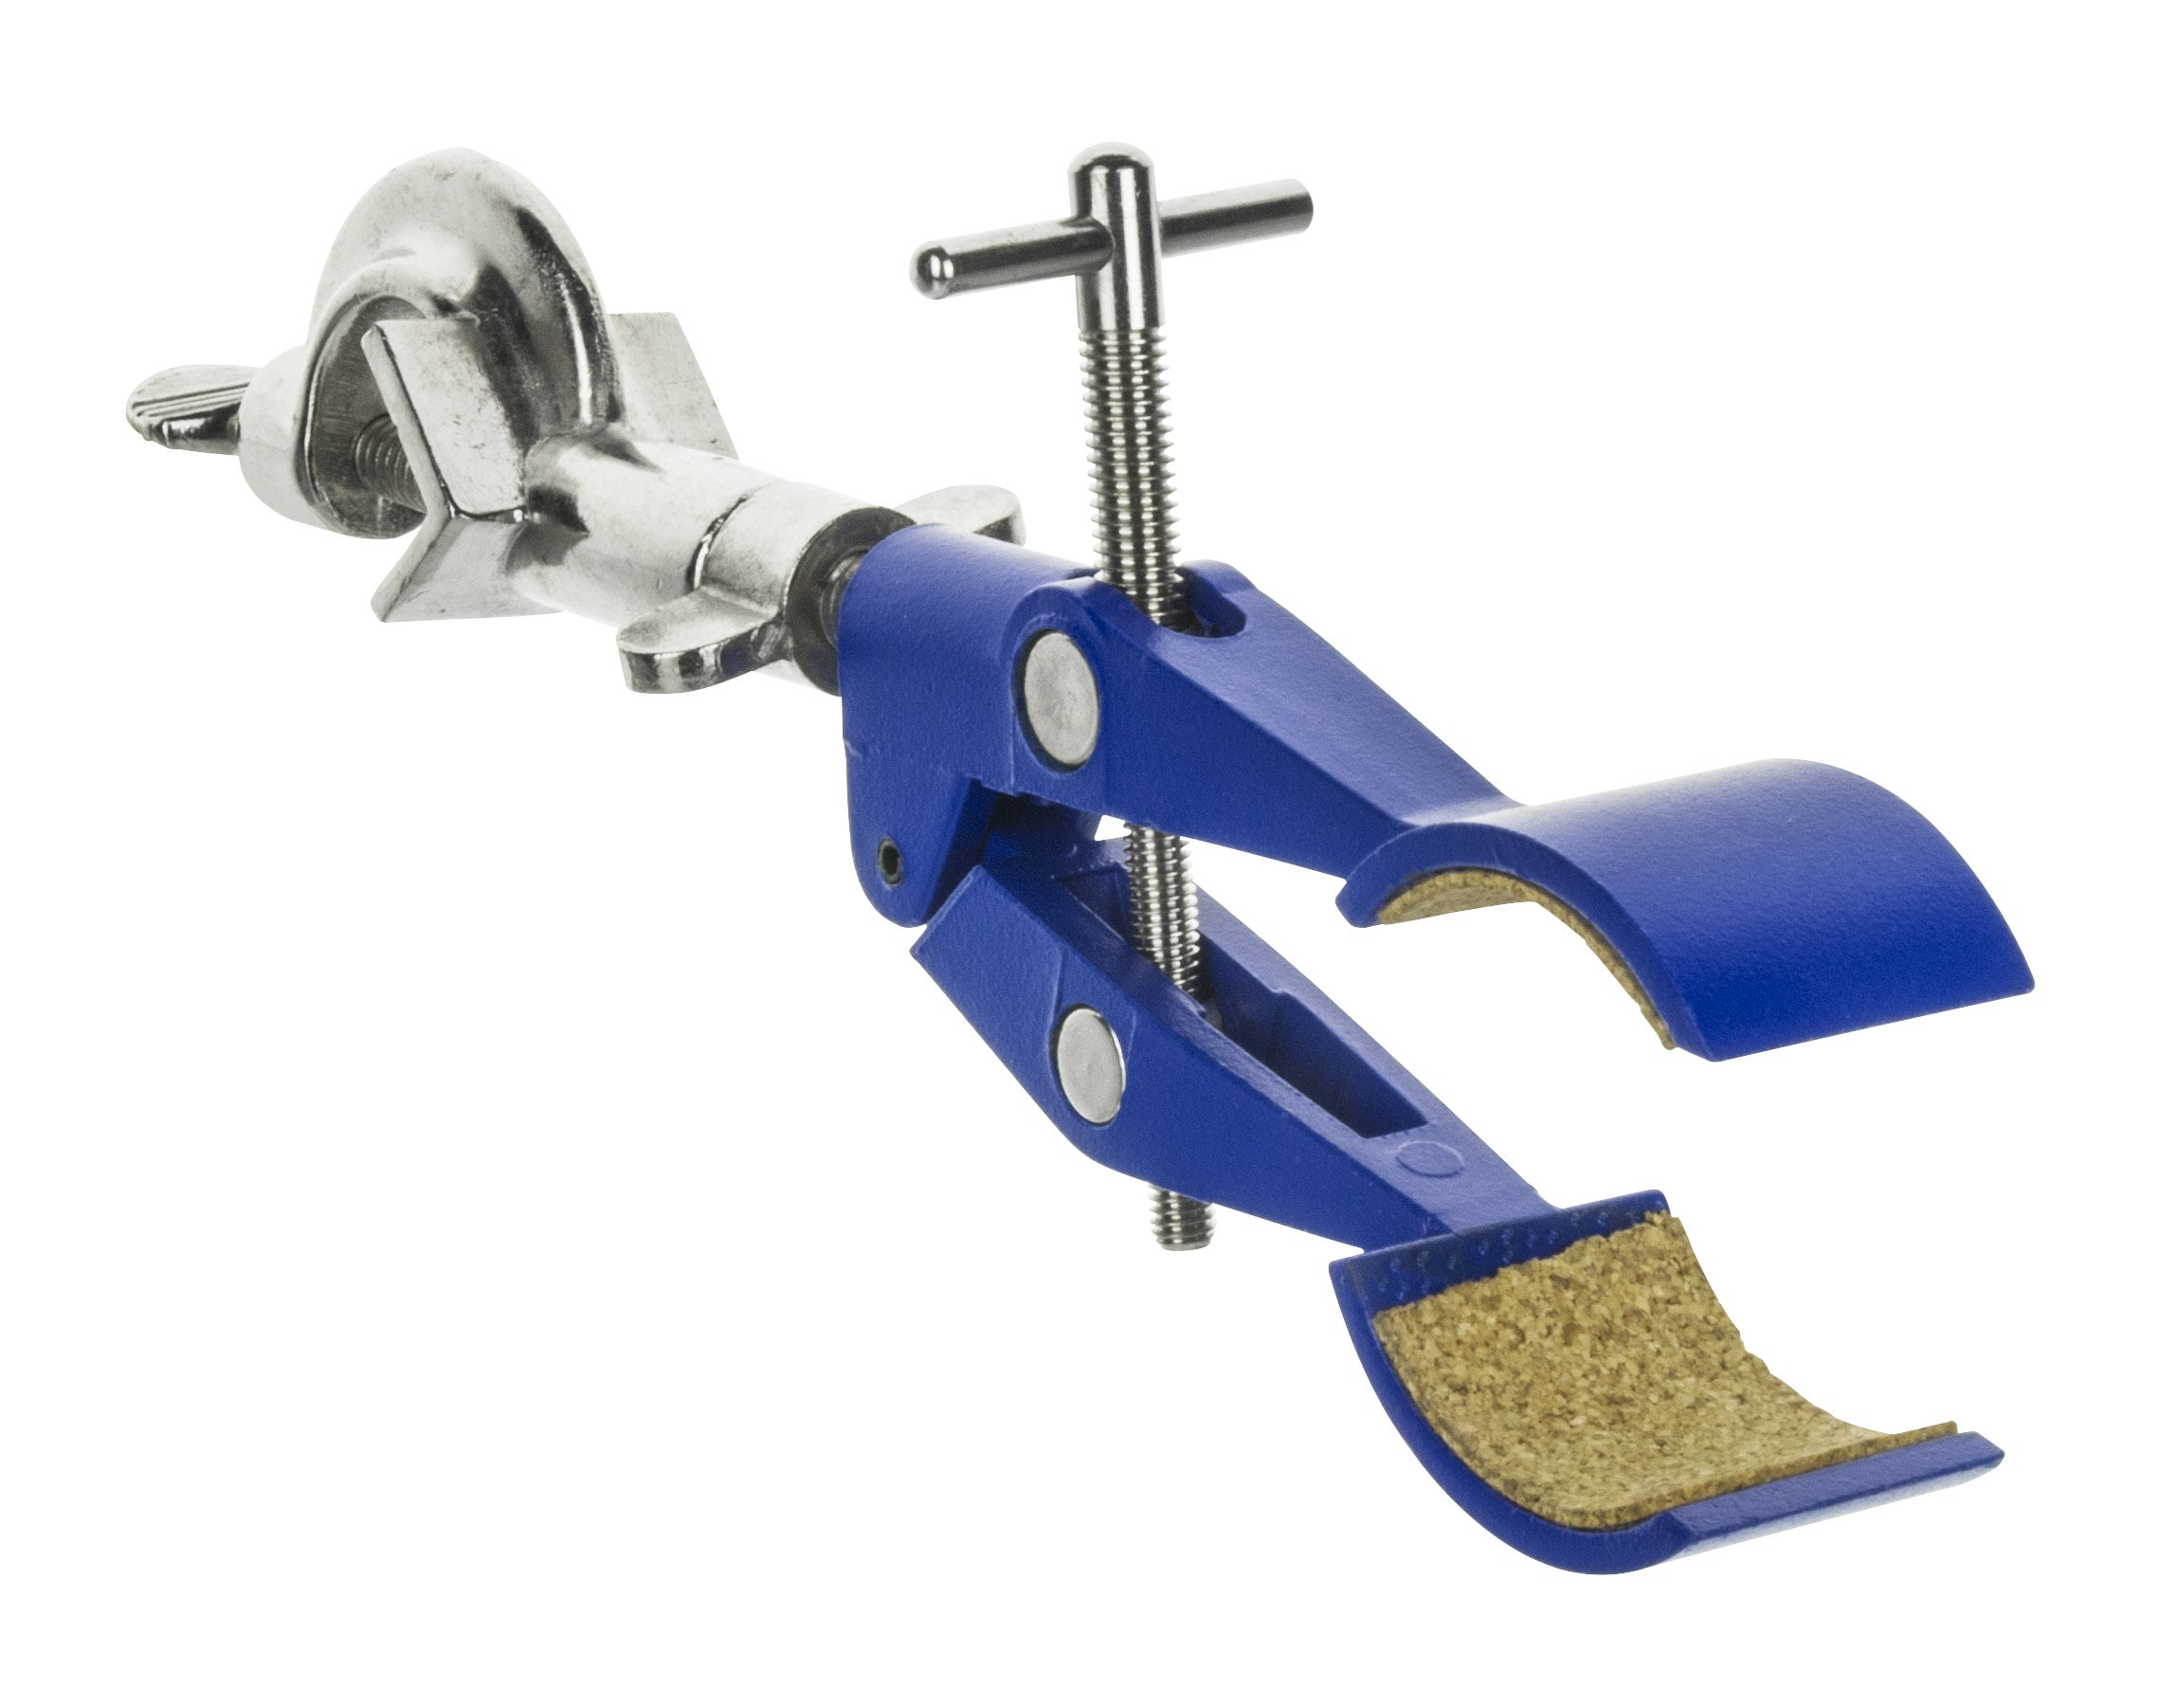 "2 Prong, Cork Lined, Lab Clamp with Boss Head,  4.625"" (11.7 cm) Maximum Clamp Opening"